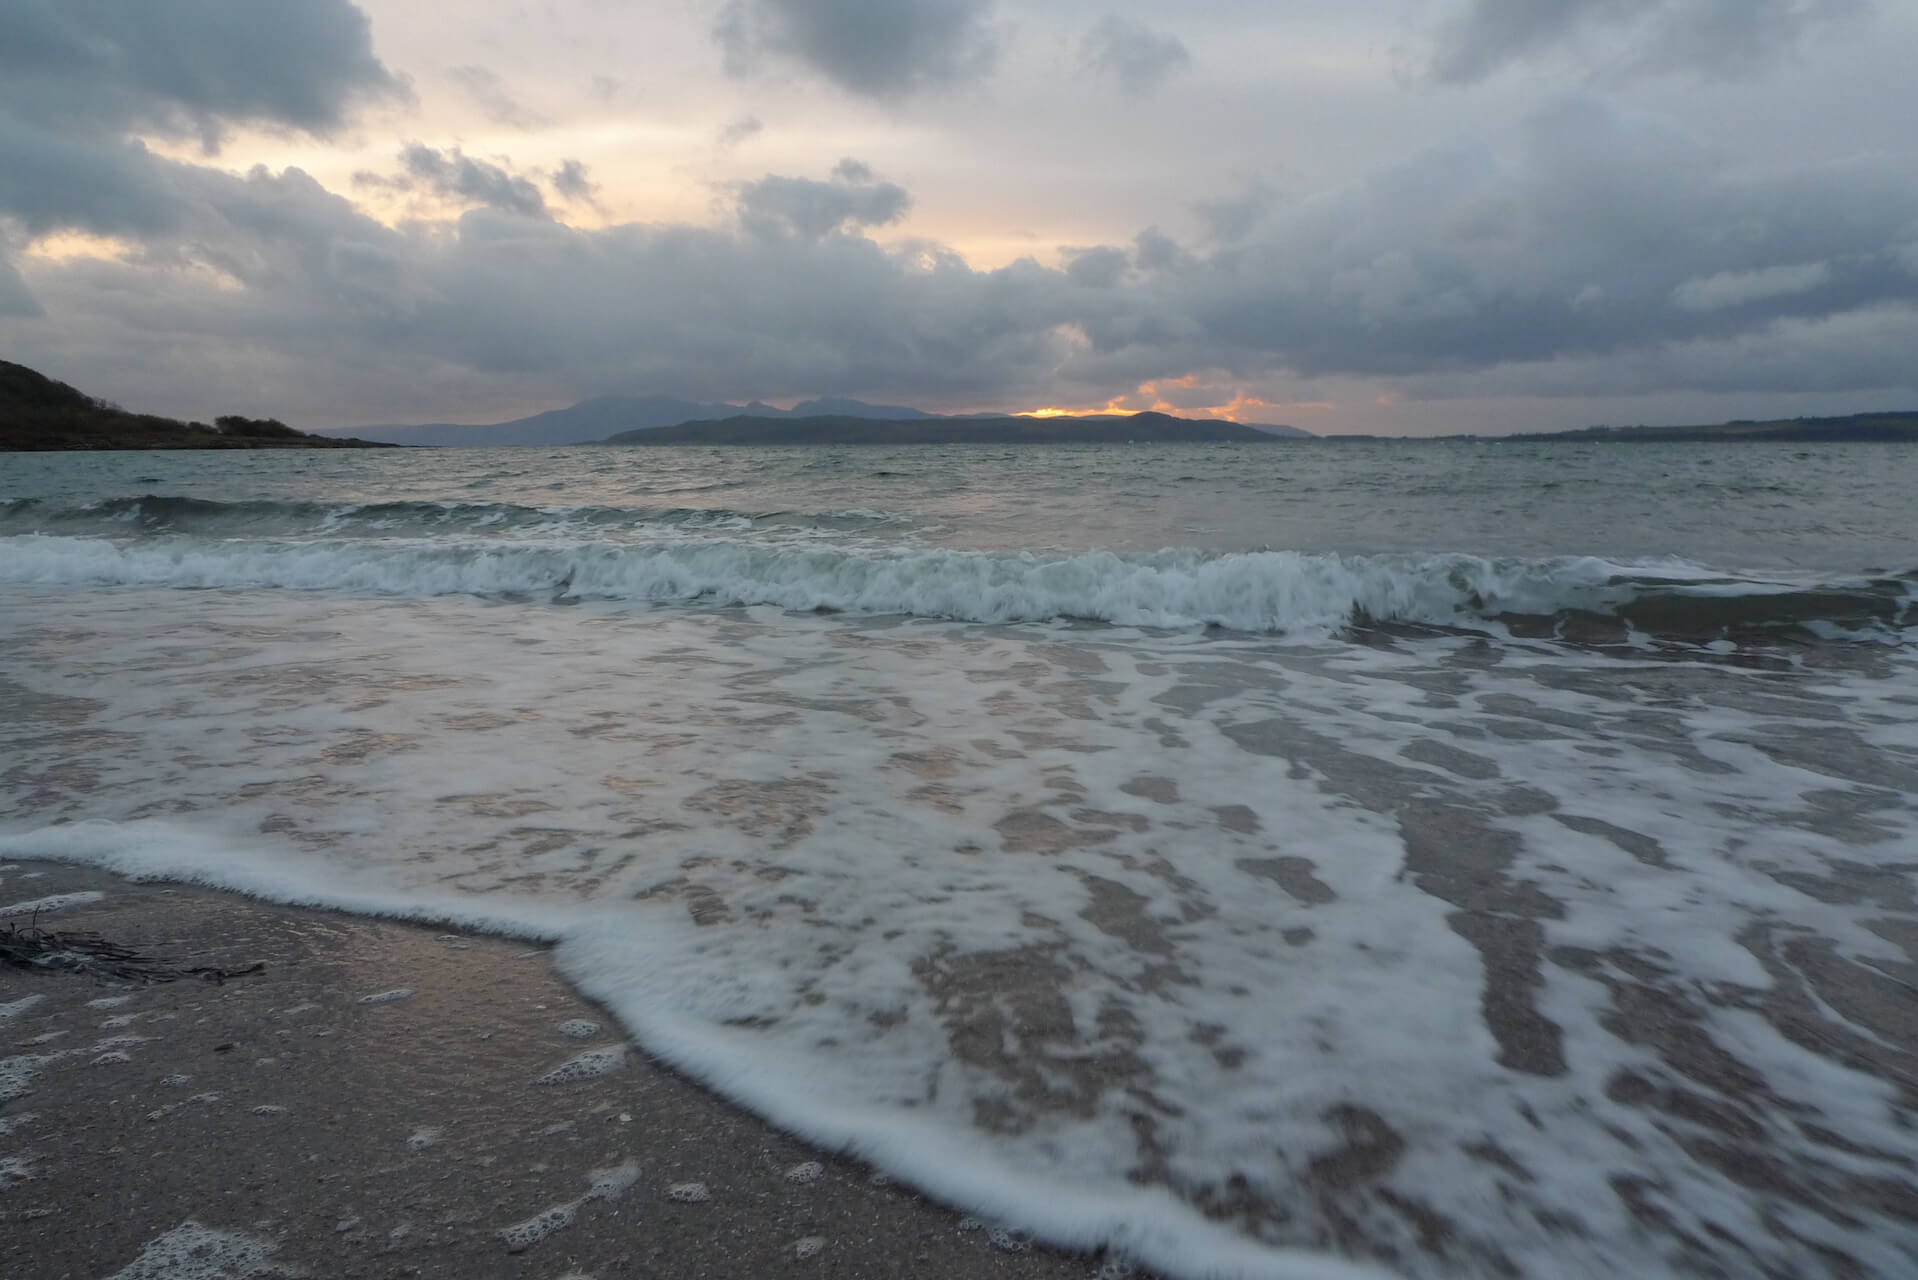 Stormy sunset sky as seen from a frothy beach on Isle of Cumbrae